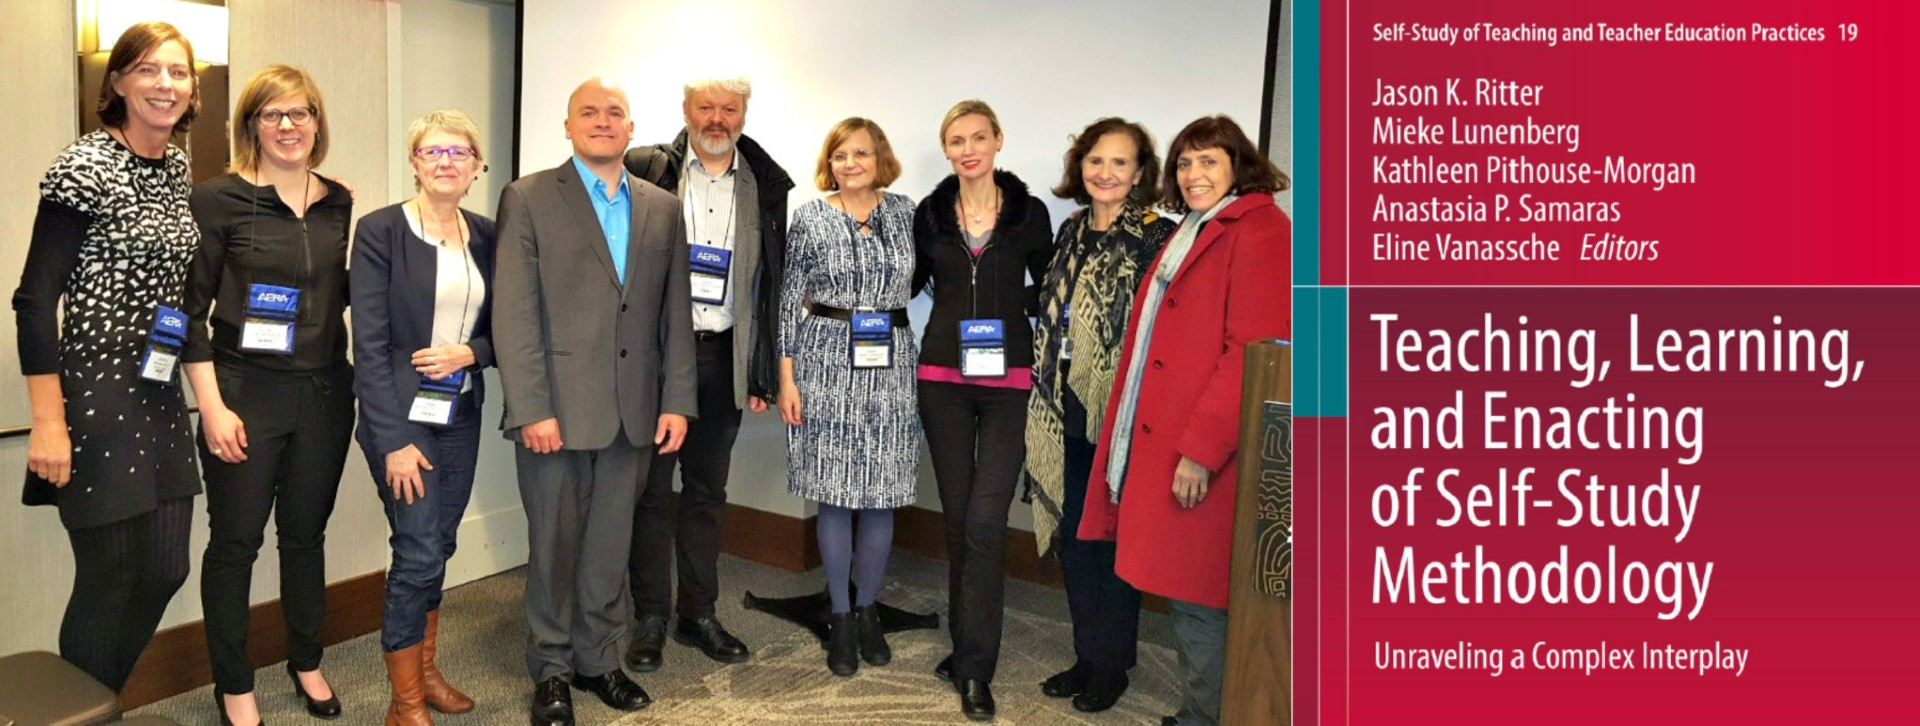 Professor Kathleen Pithouse-Morgan (third right) with international presenters and participants at the AERA 2018 symposium in which she discussed the book Teaching, learning, and enacting of self-study methodology: Unraveling a complex interplay.